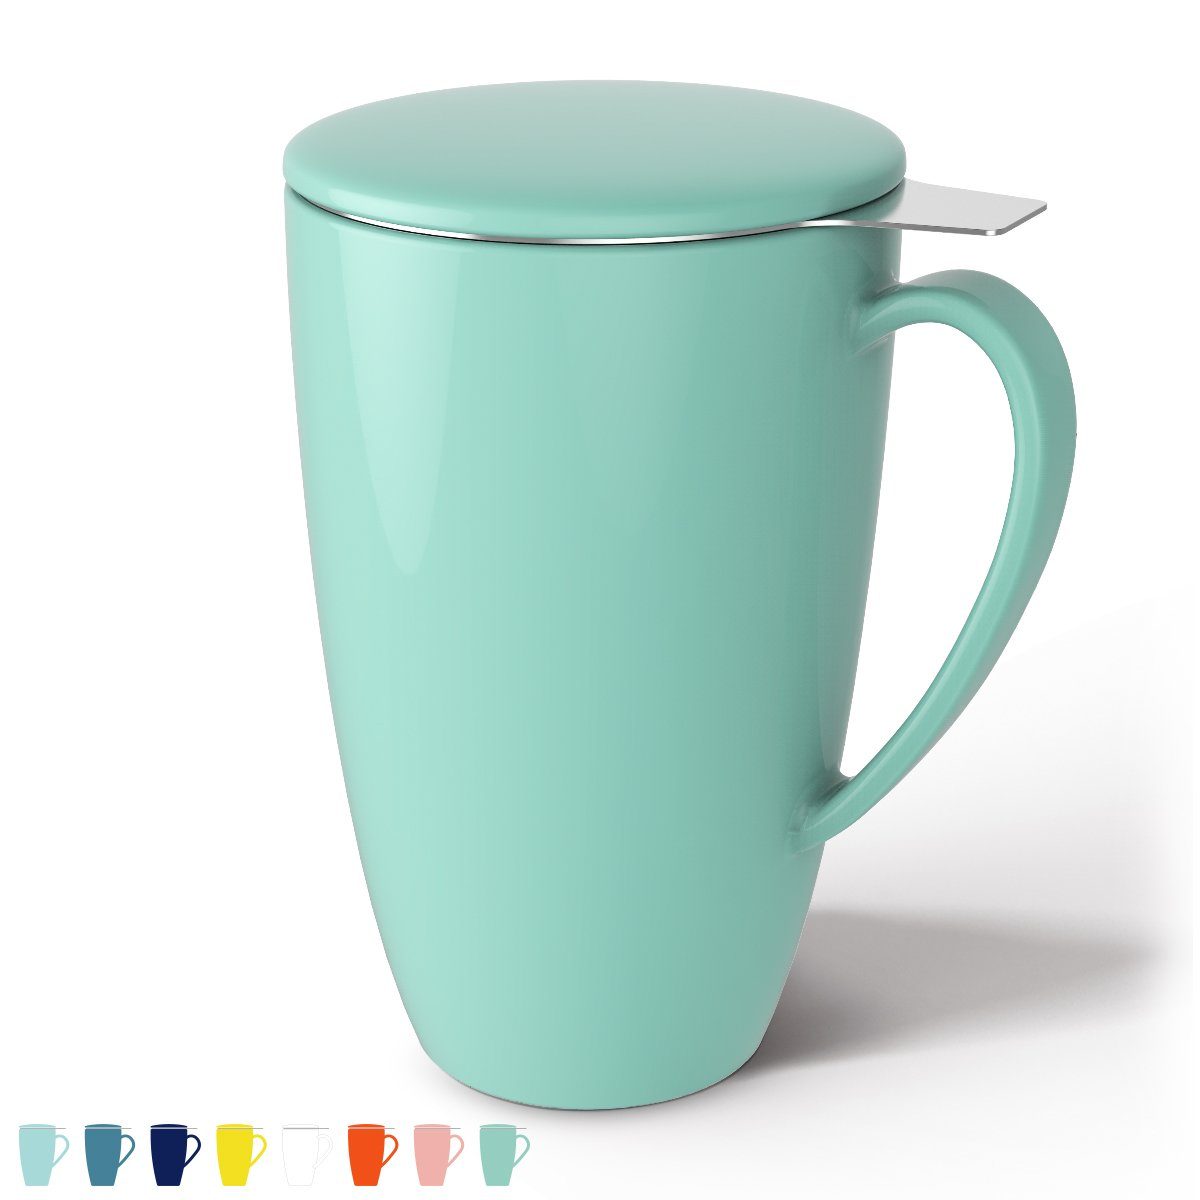 Sweese 2109 Porcelain Tea Mug with Infuser and Lid, 15 OZ, Mint Green